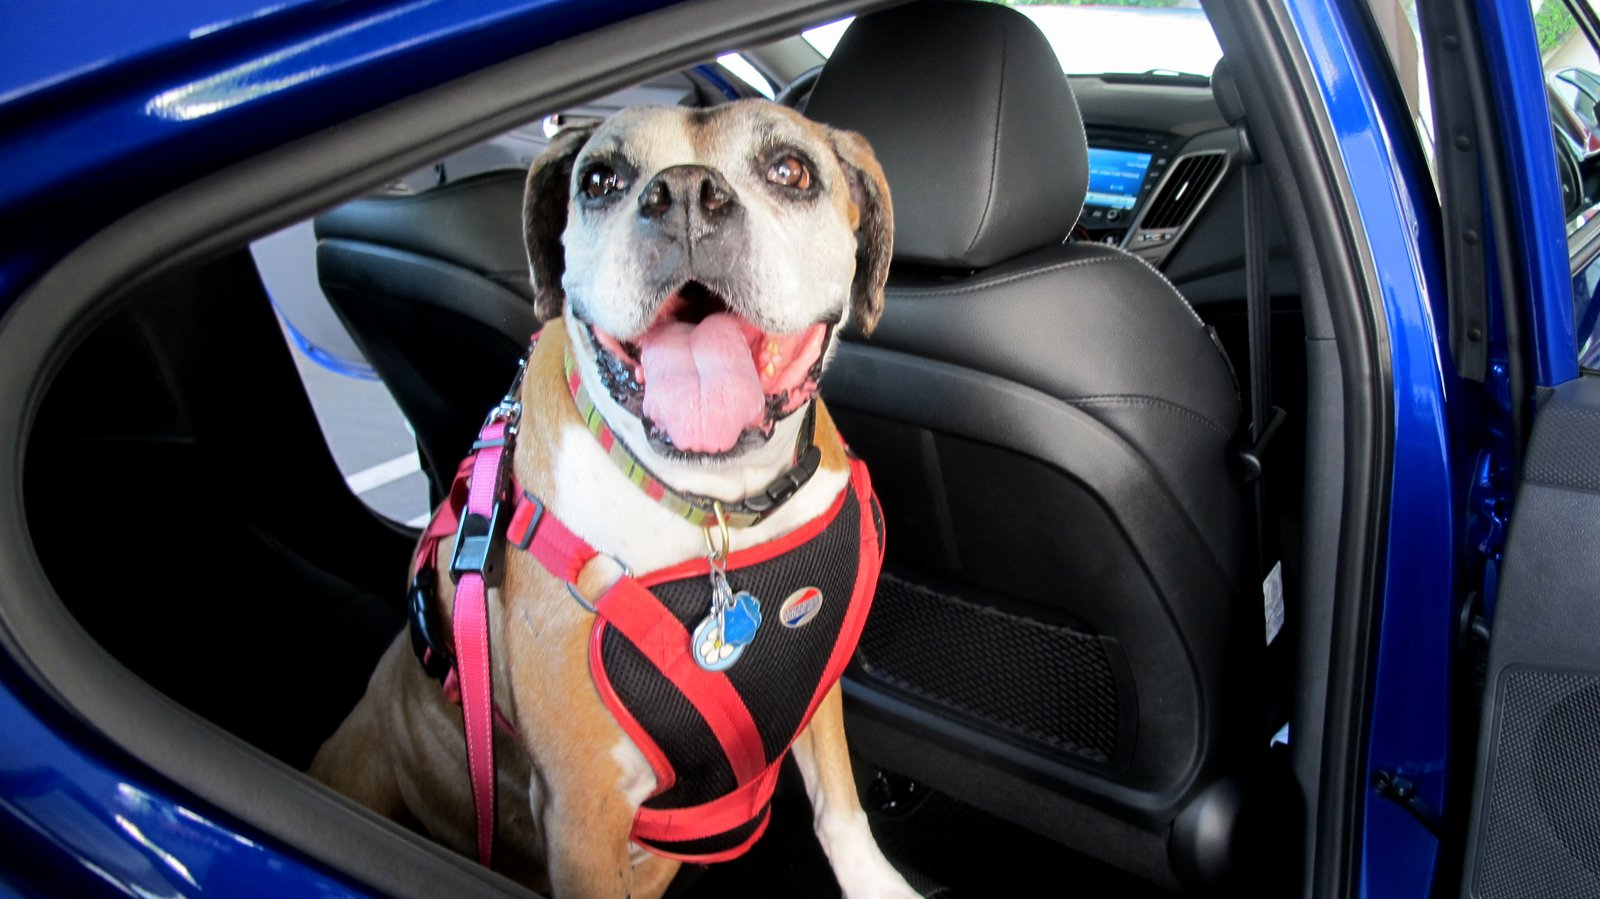 BarkBuckleUp Announces Top Ten Pet Friendly 2012 Vehicles